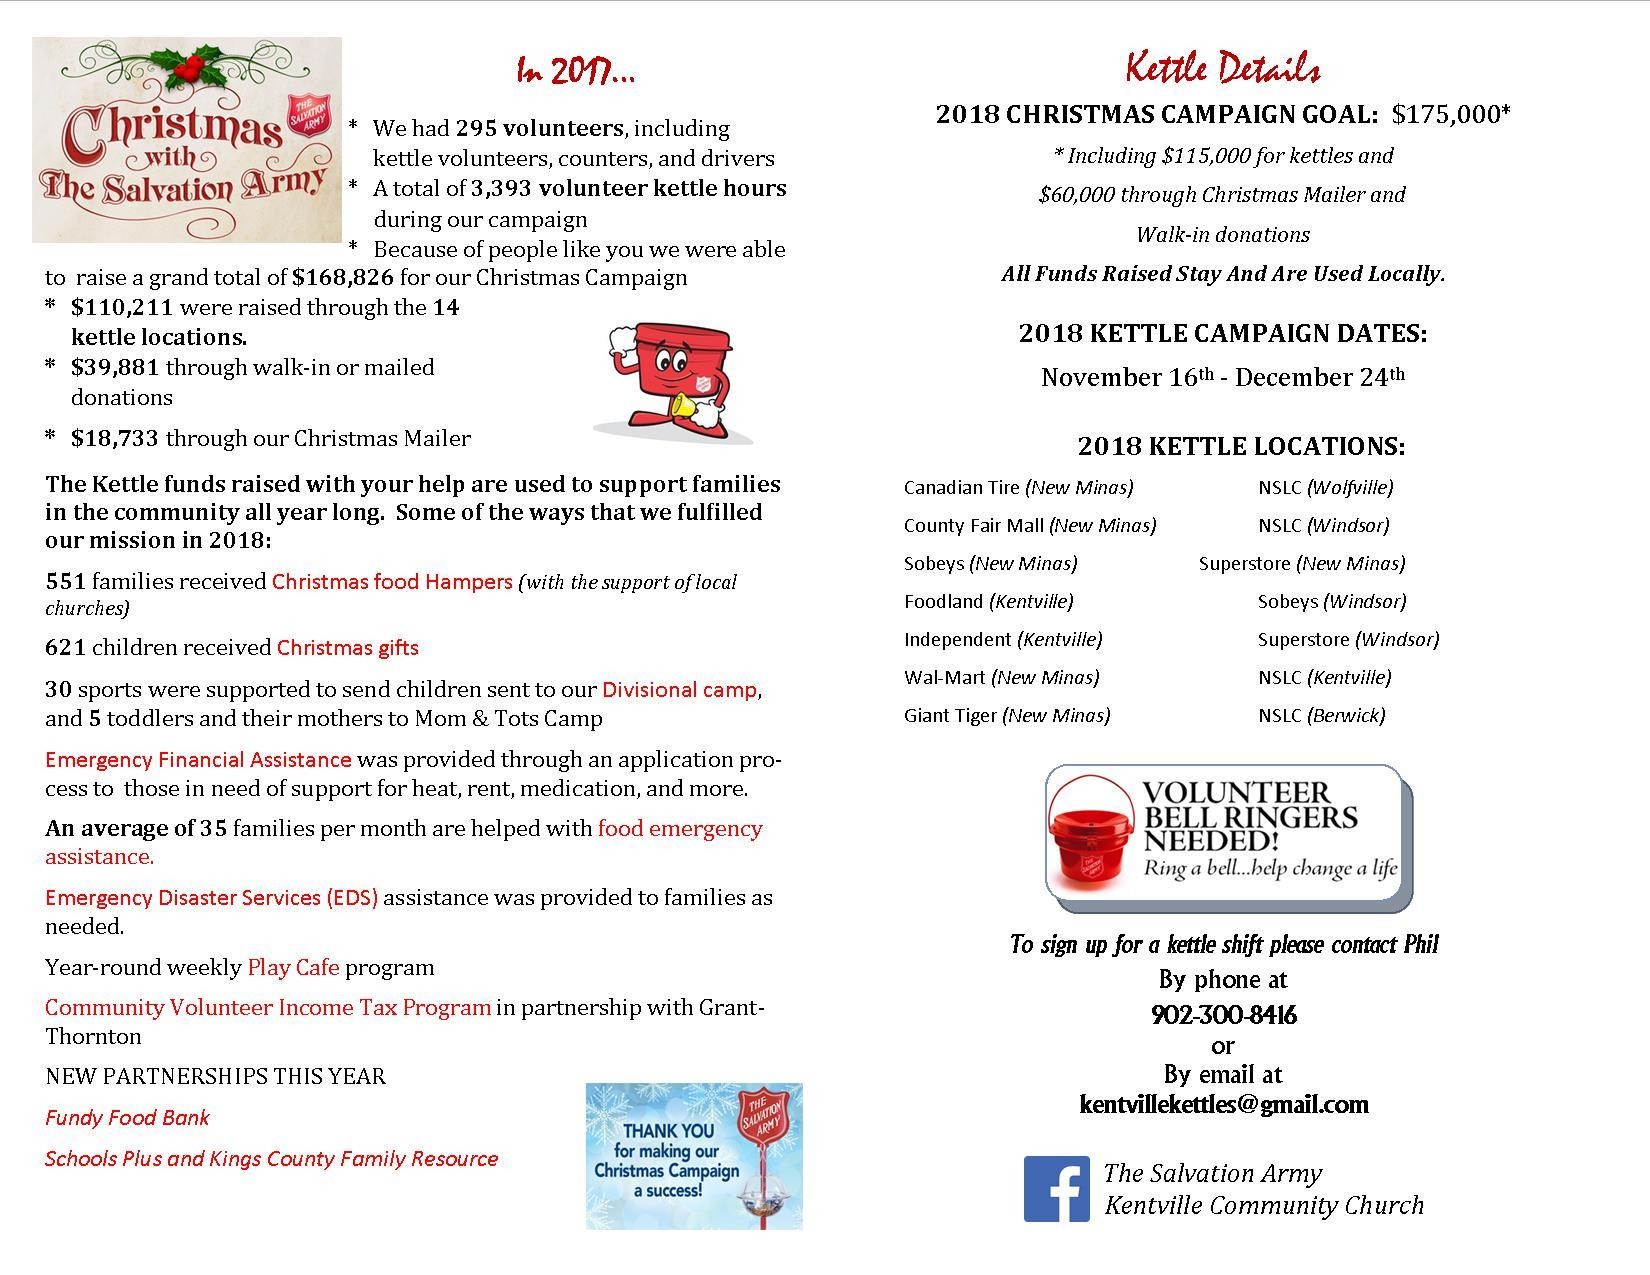 c3bbd007648 The kettle program needs individual volunteers this year in addition to our  regular Rotary Shifts - PLEASE